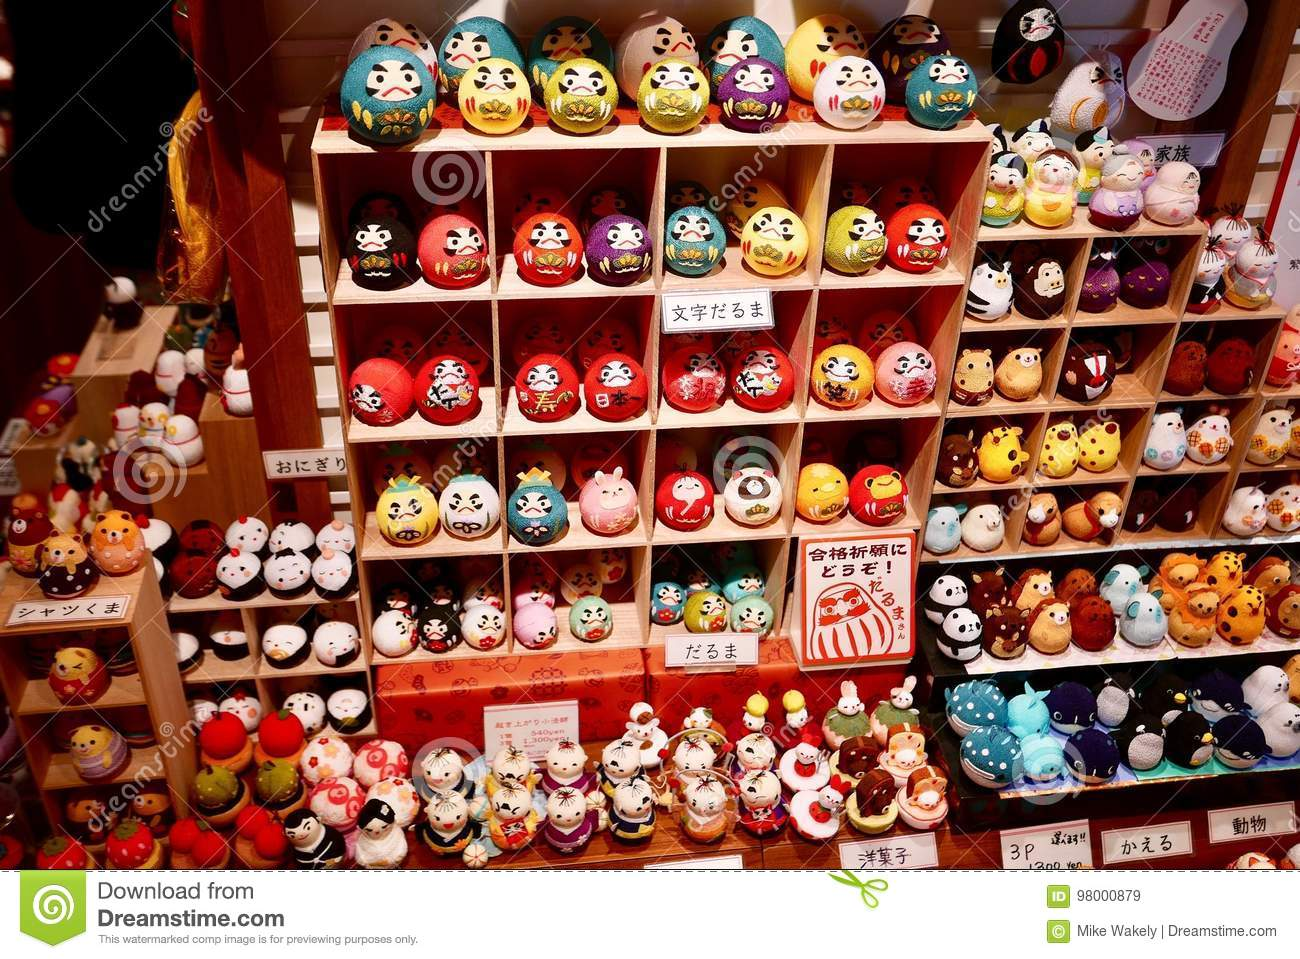 Japanese Souvenirs In Kyoto Editorial Stock Image - Image of ... f4229c415e6e